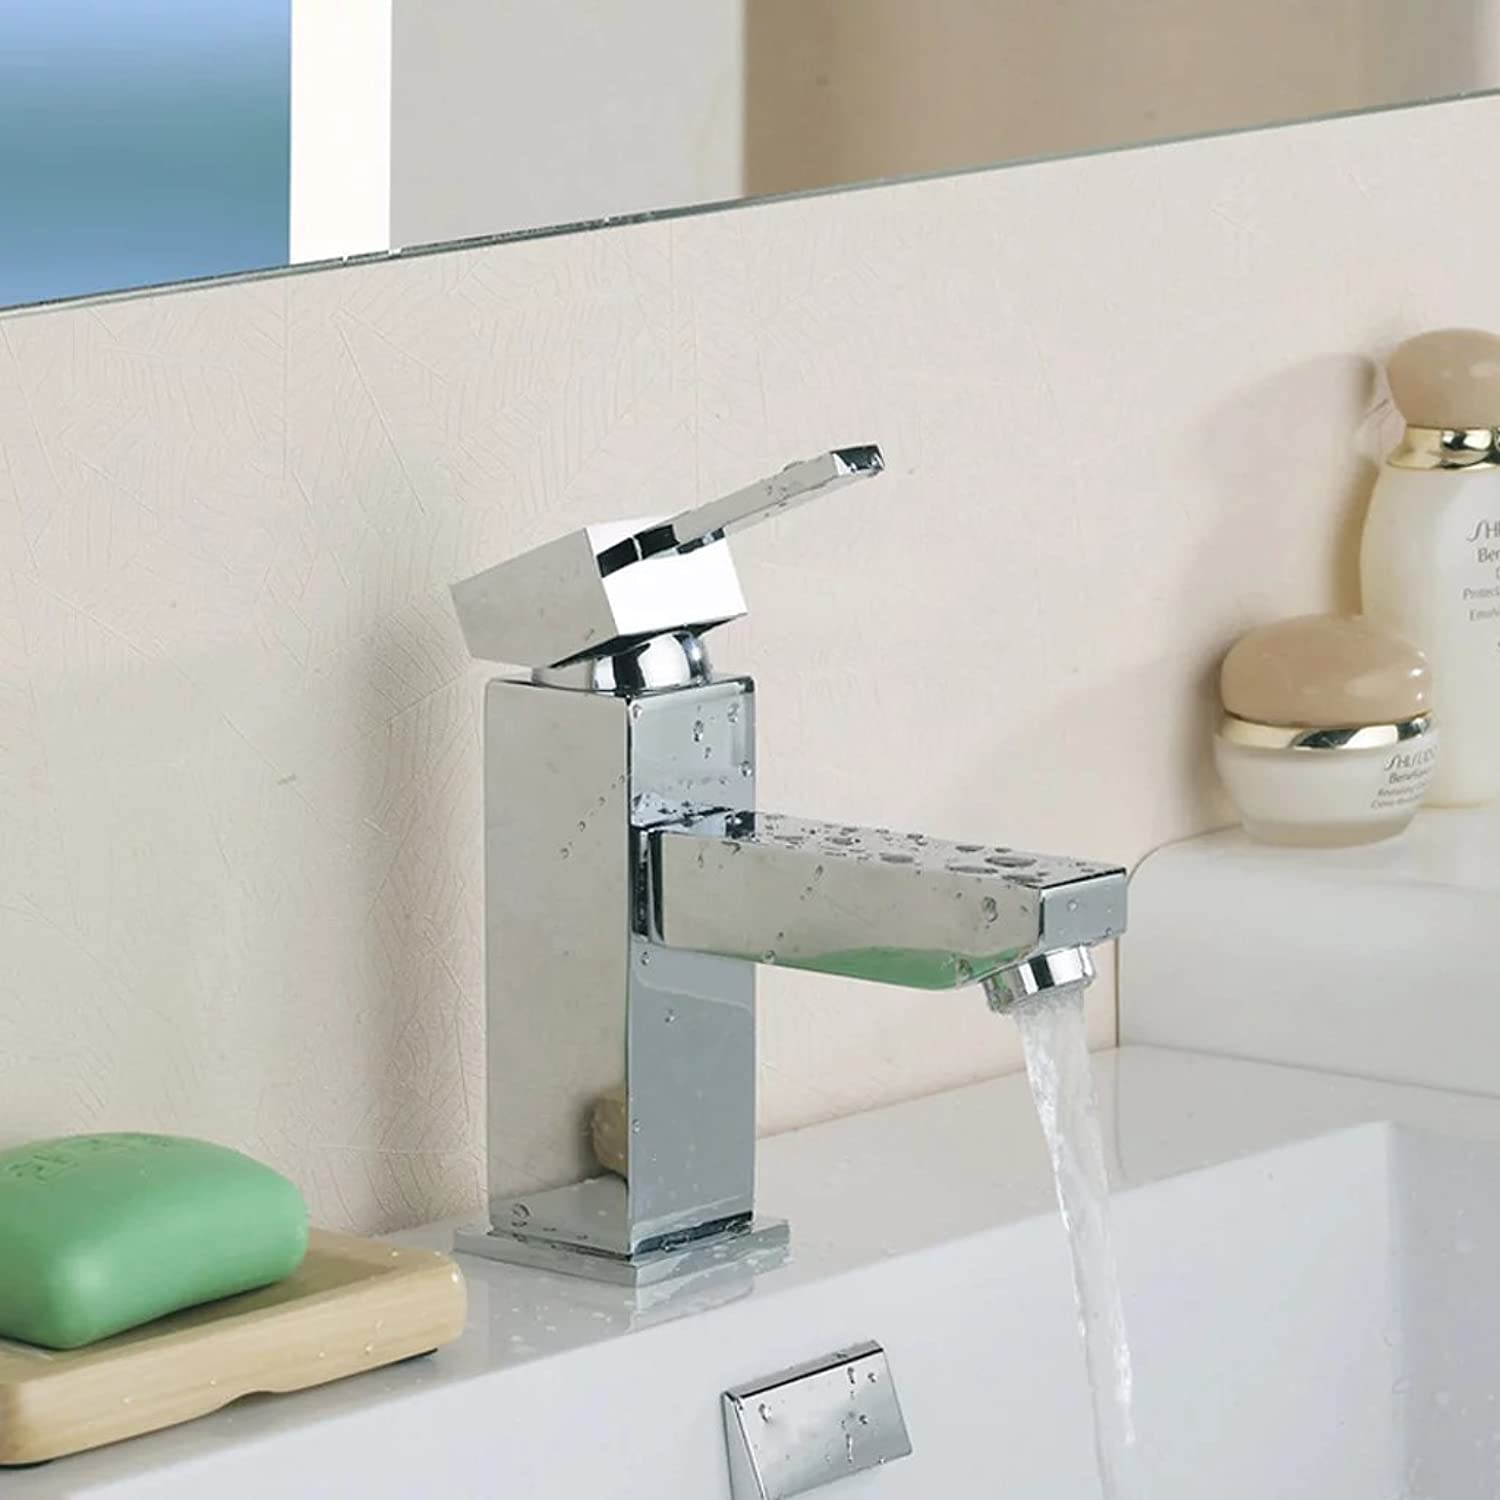 DLewiee Bathroom Faucet Basin Single Hole Hot And Cold Taps Full Copper Basin Faucet Audience